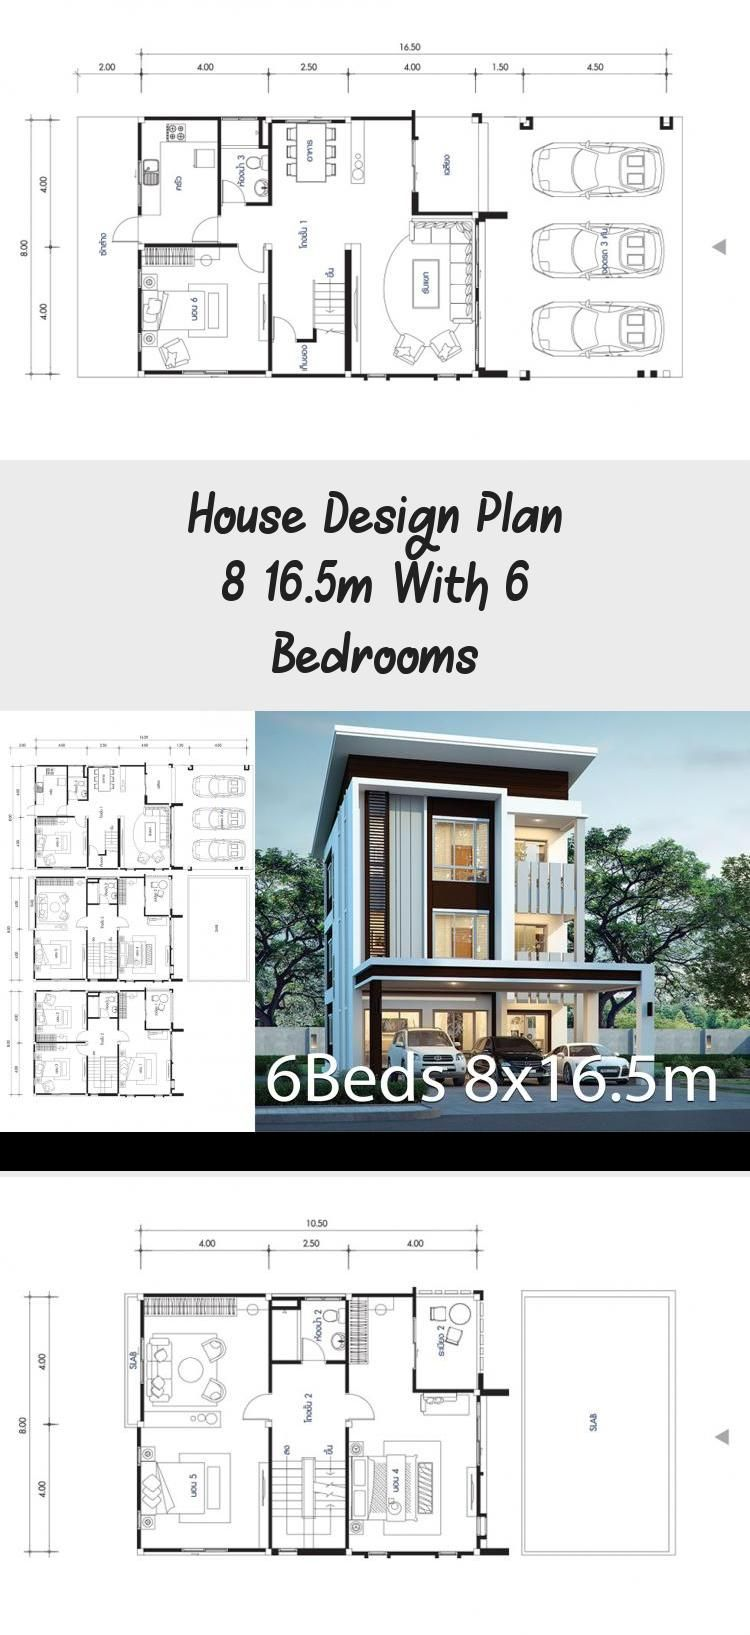 House Design Plan 8 16 5m With 6 Bedrooms In 2020 Home Design Plans Beach House Plans Unique House Plans